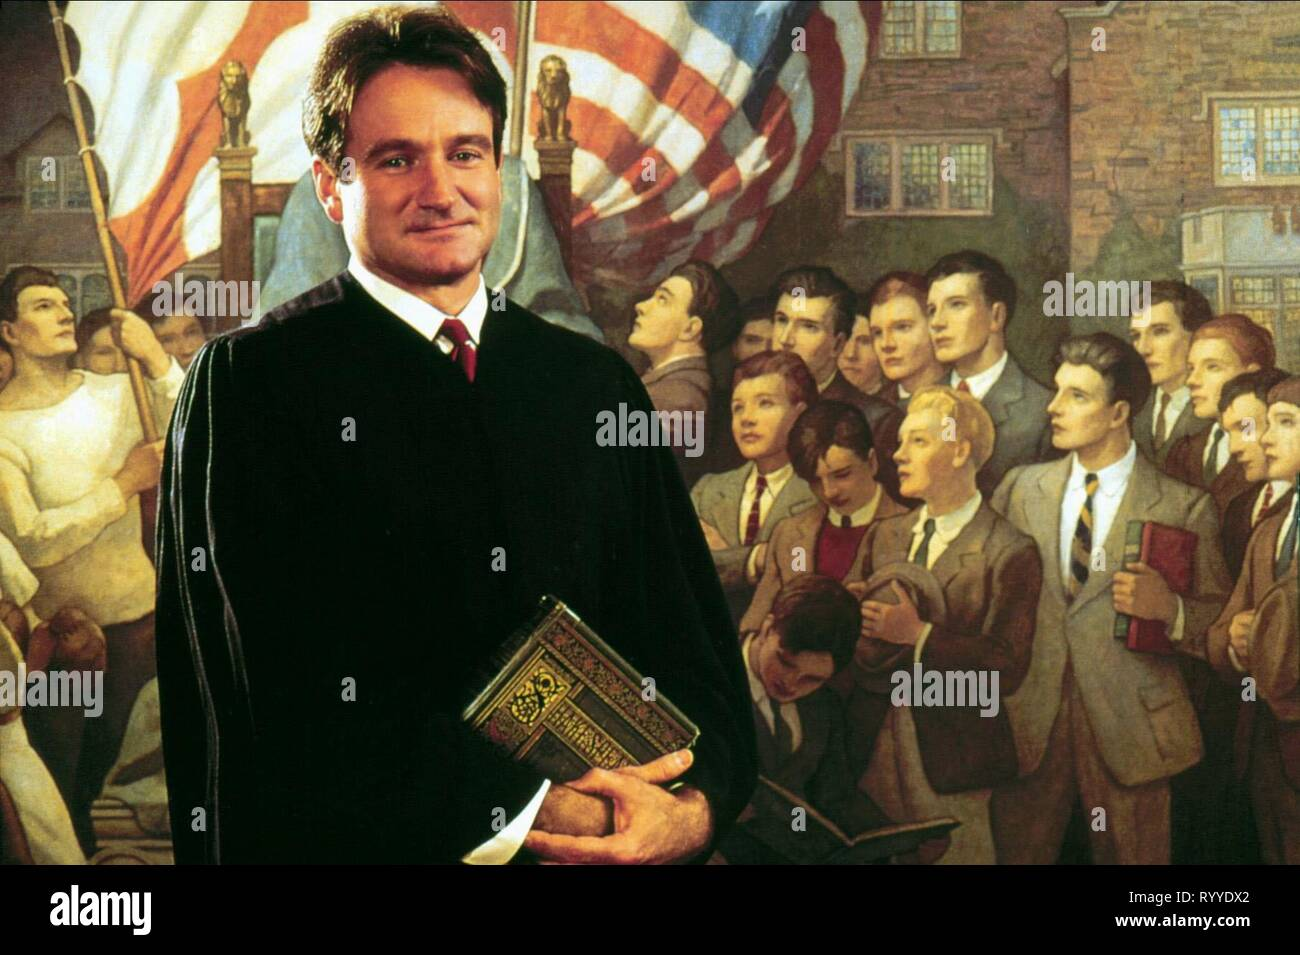 Robin Williams Dead Poets Society 1989 Stock Photo Alamy